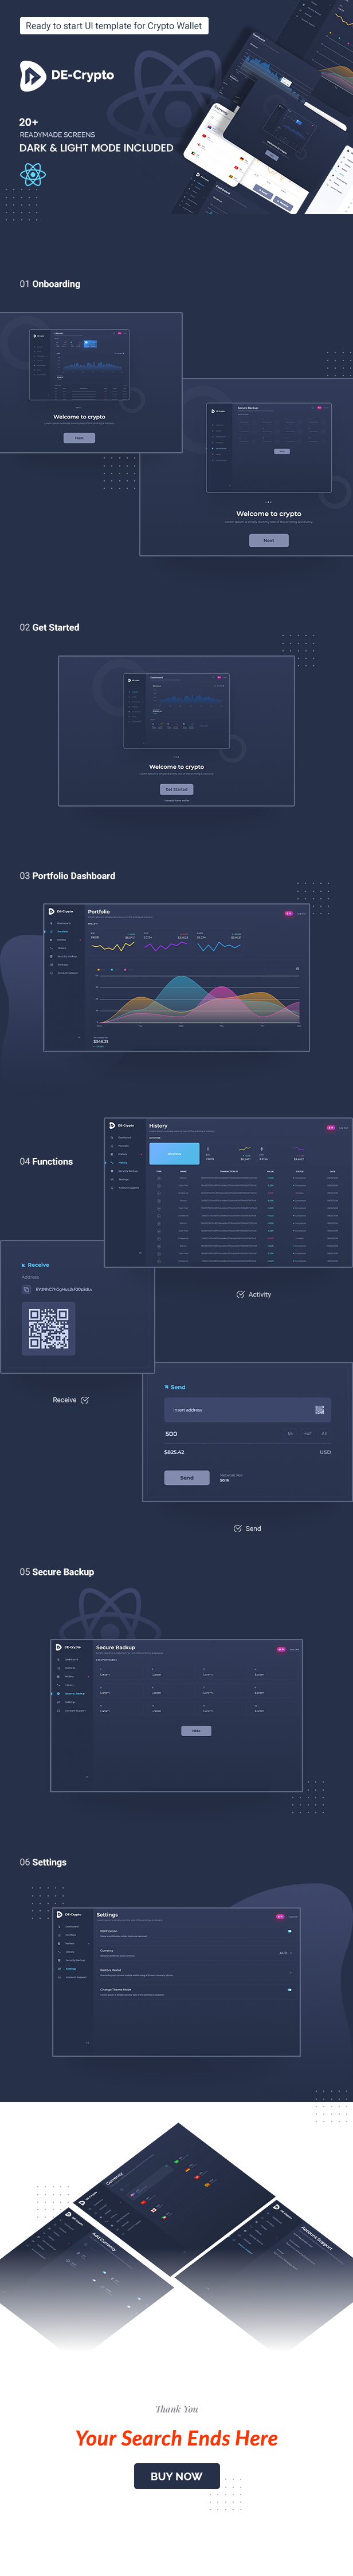 decentralized cryptocurrency react js web app template